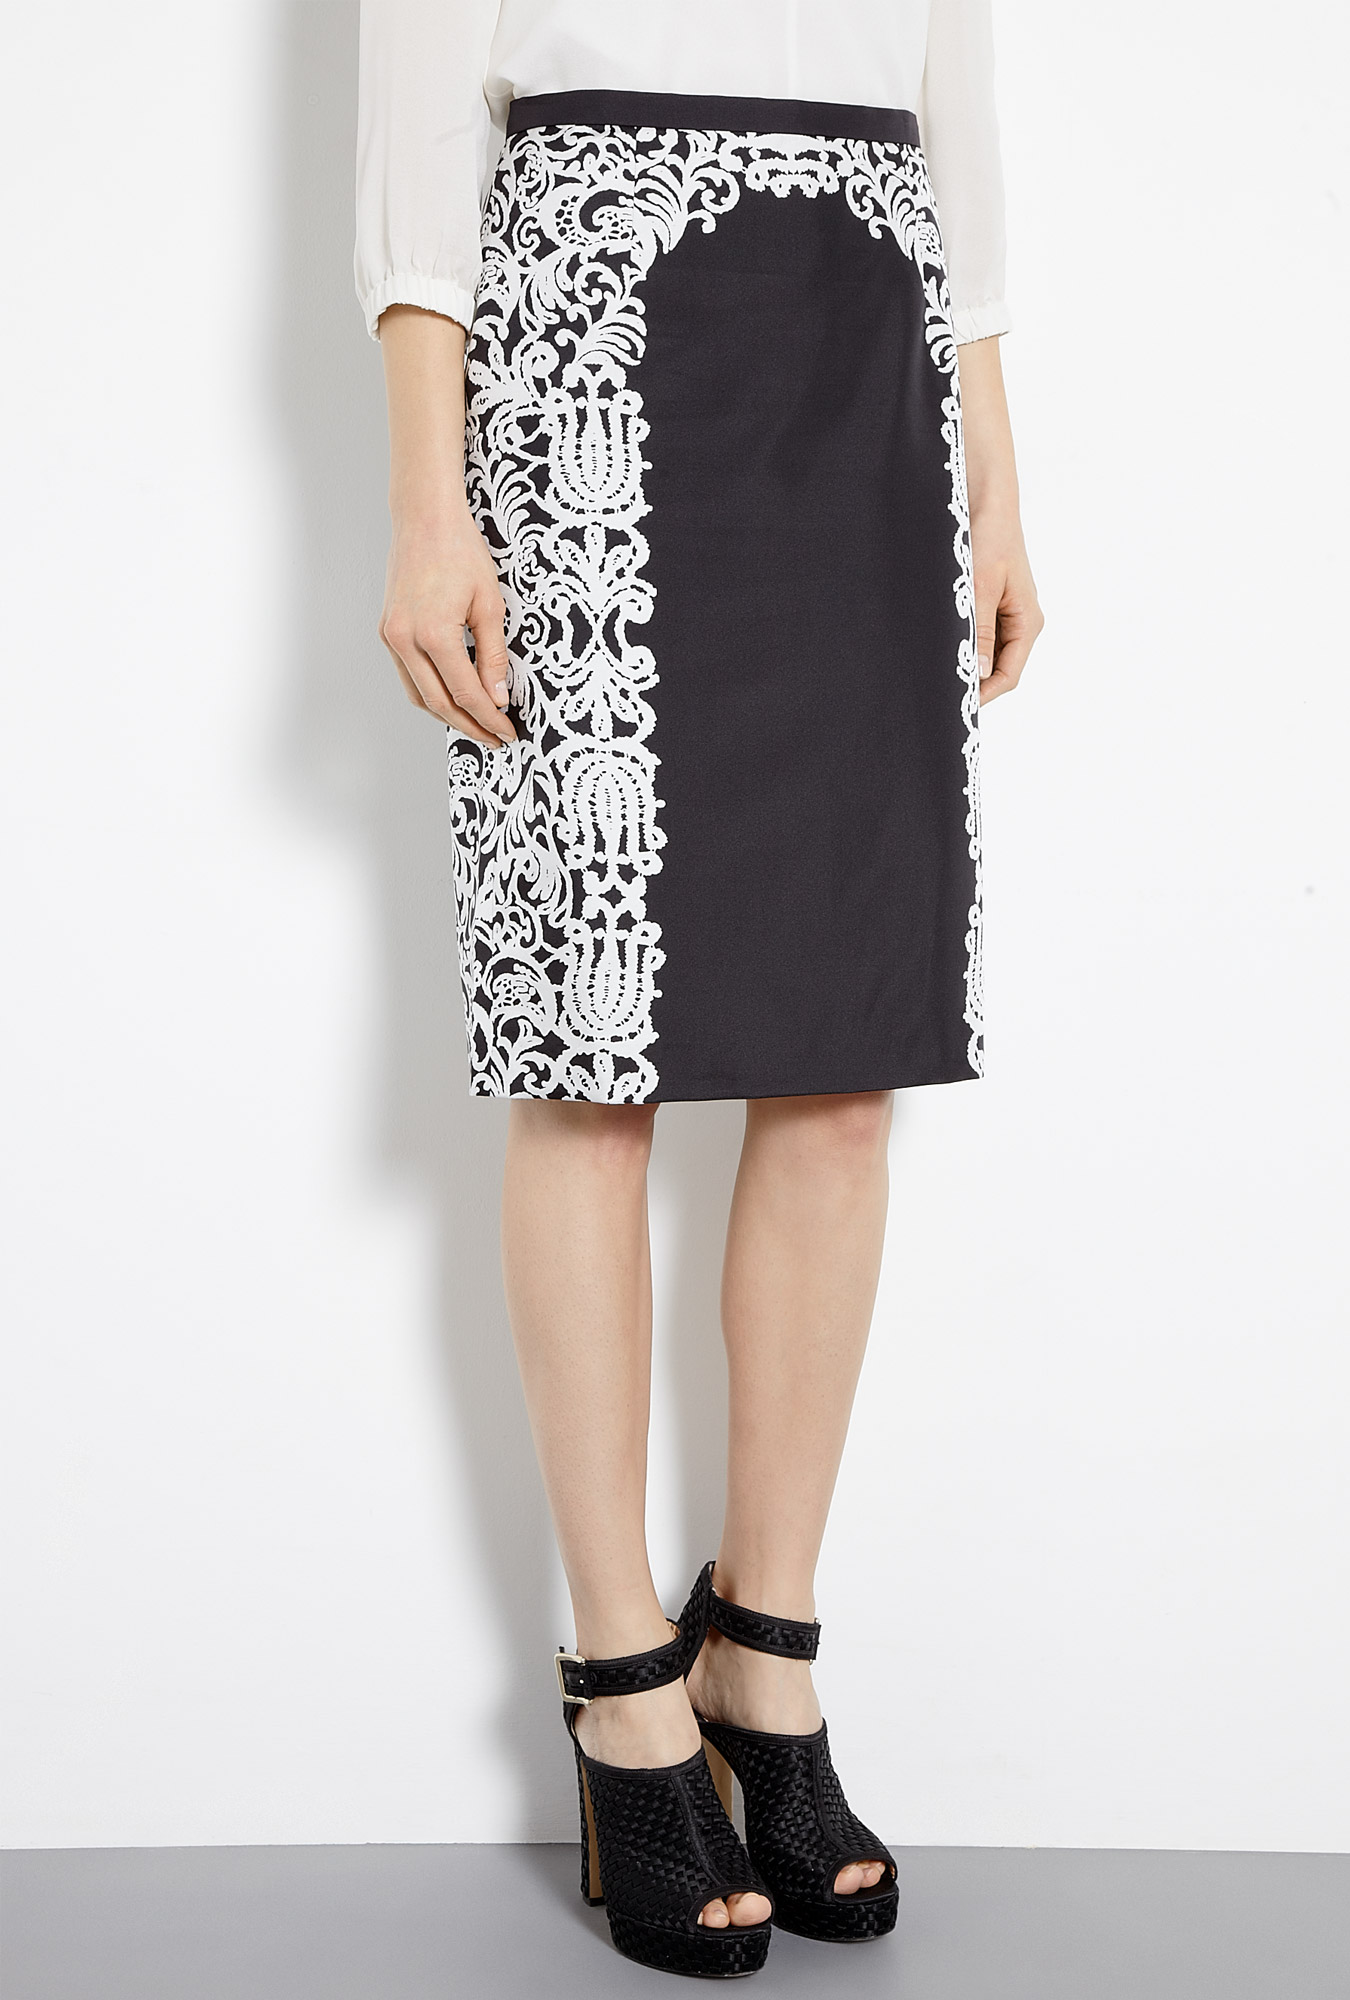 tibi-violette-baroque-lace-print-silk-pencil-skirt-product-1-5066300-319089485.